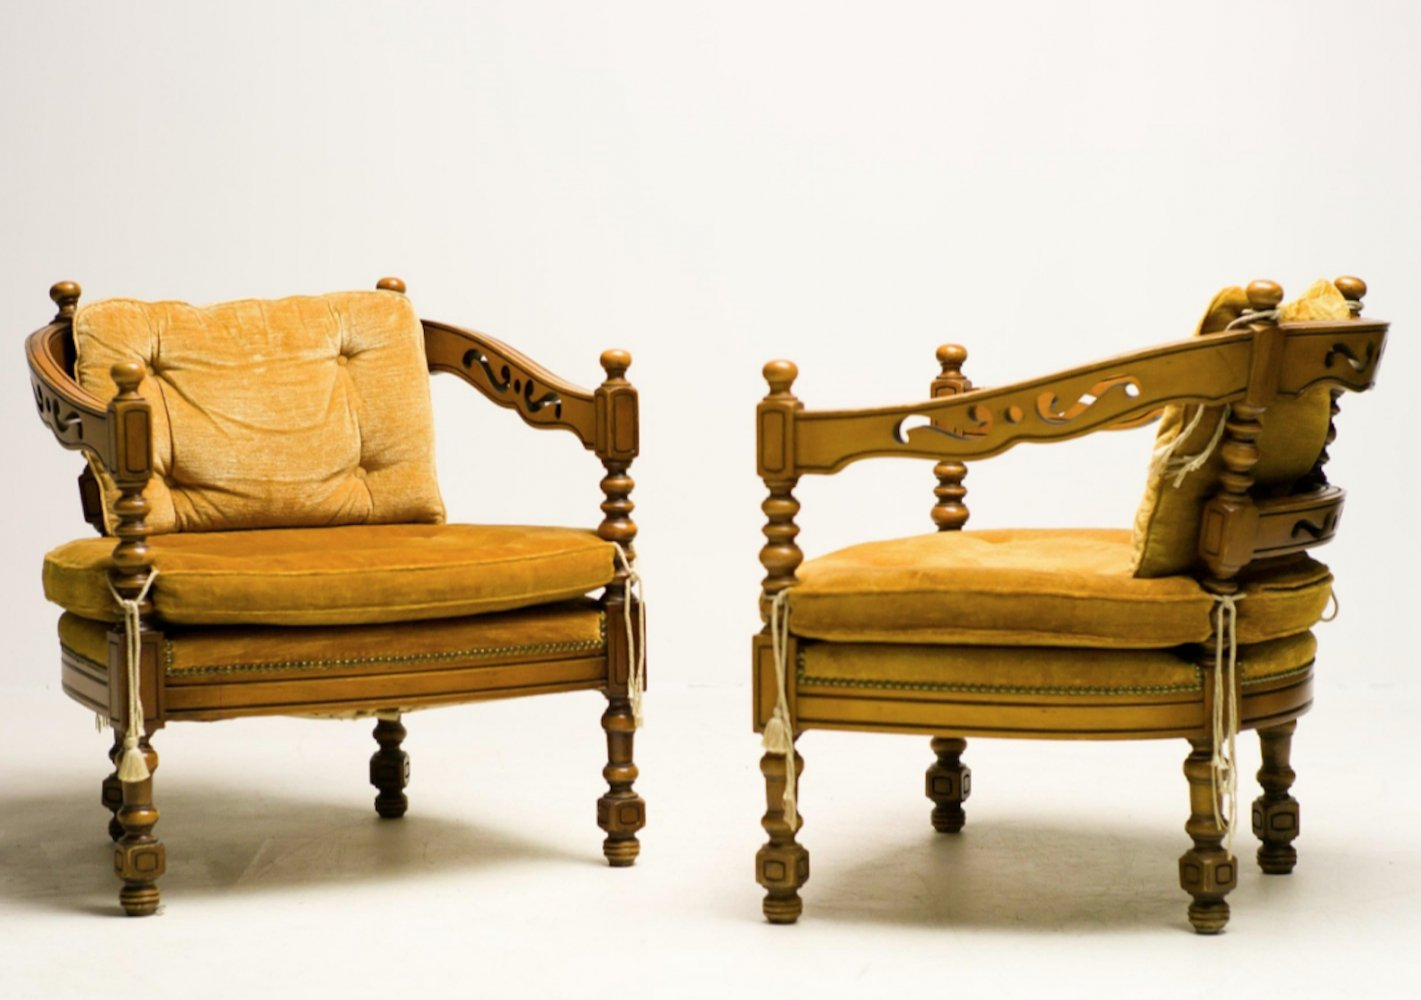 Set of 2 Giorgetti armchairs from